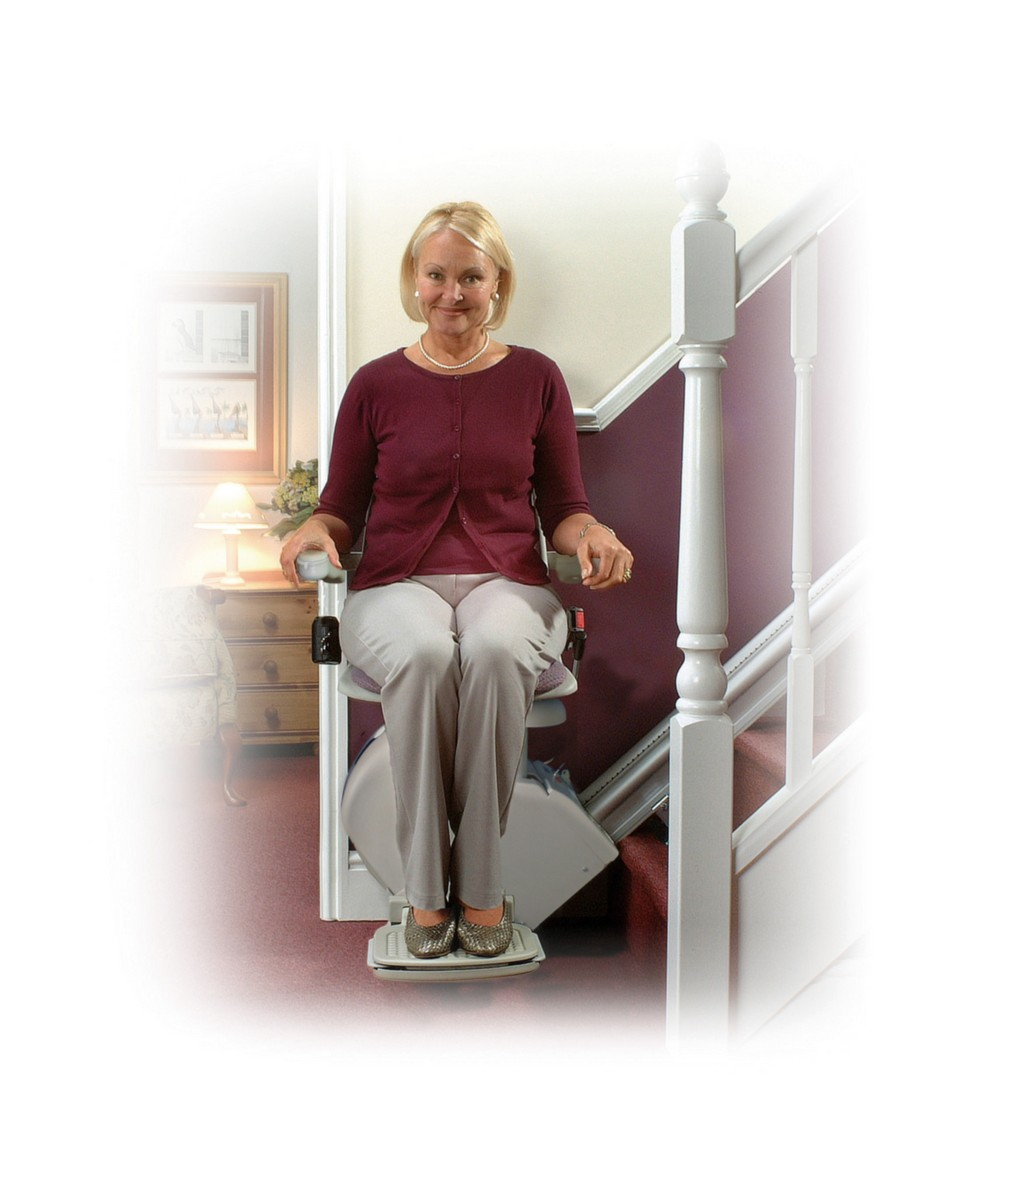 savaria stair lifts, chair stair lift, sterling 950 stair lift, stair lift medicare